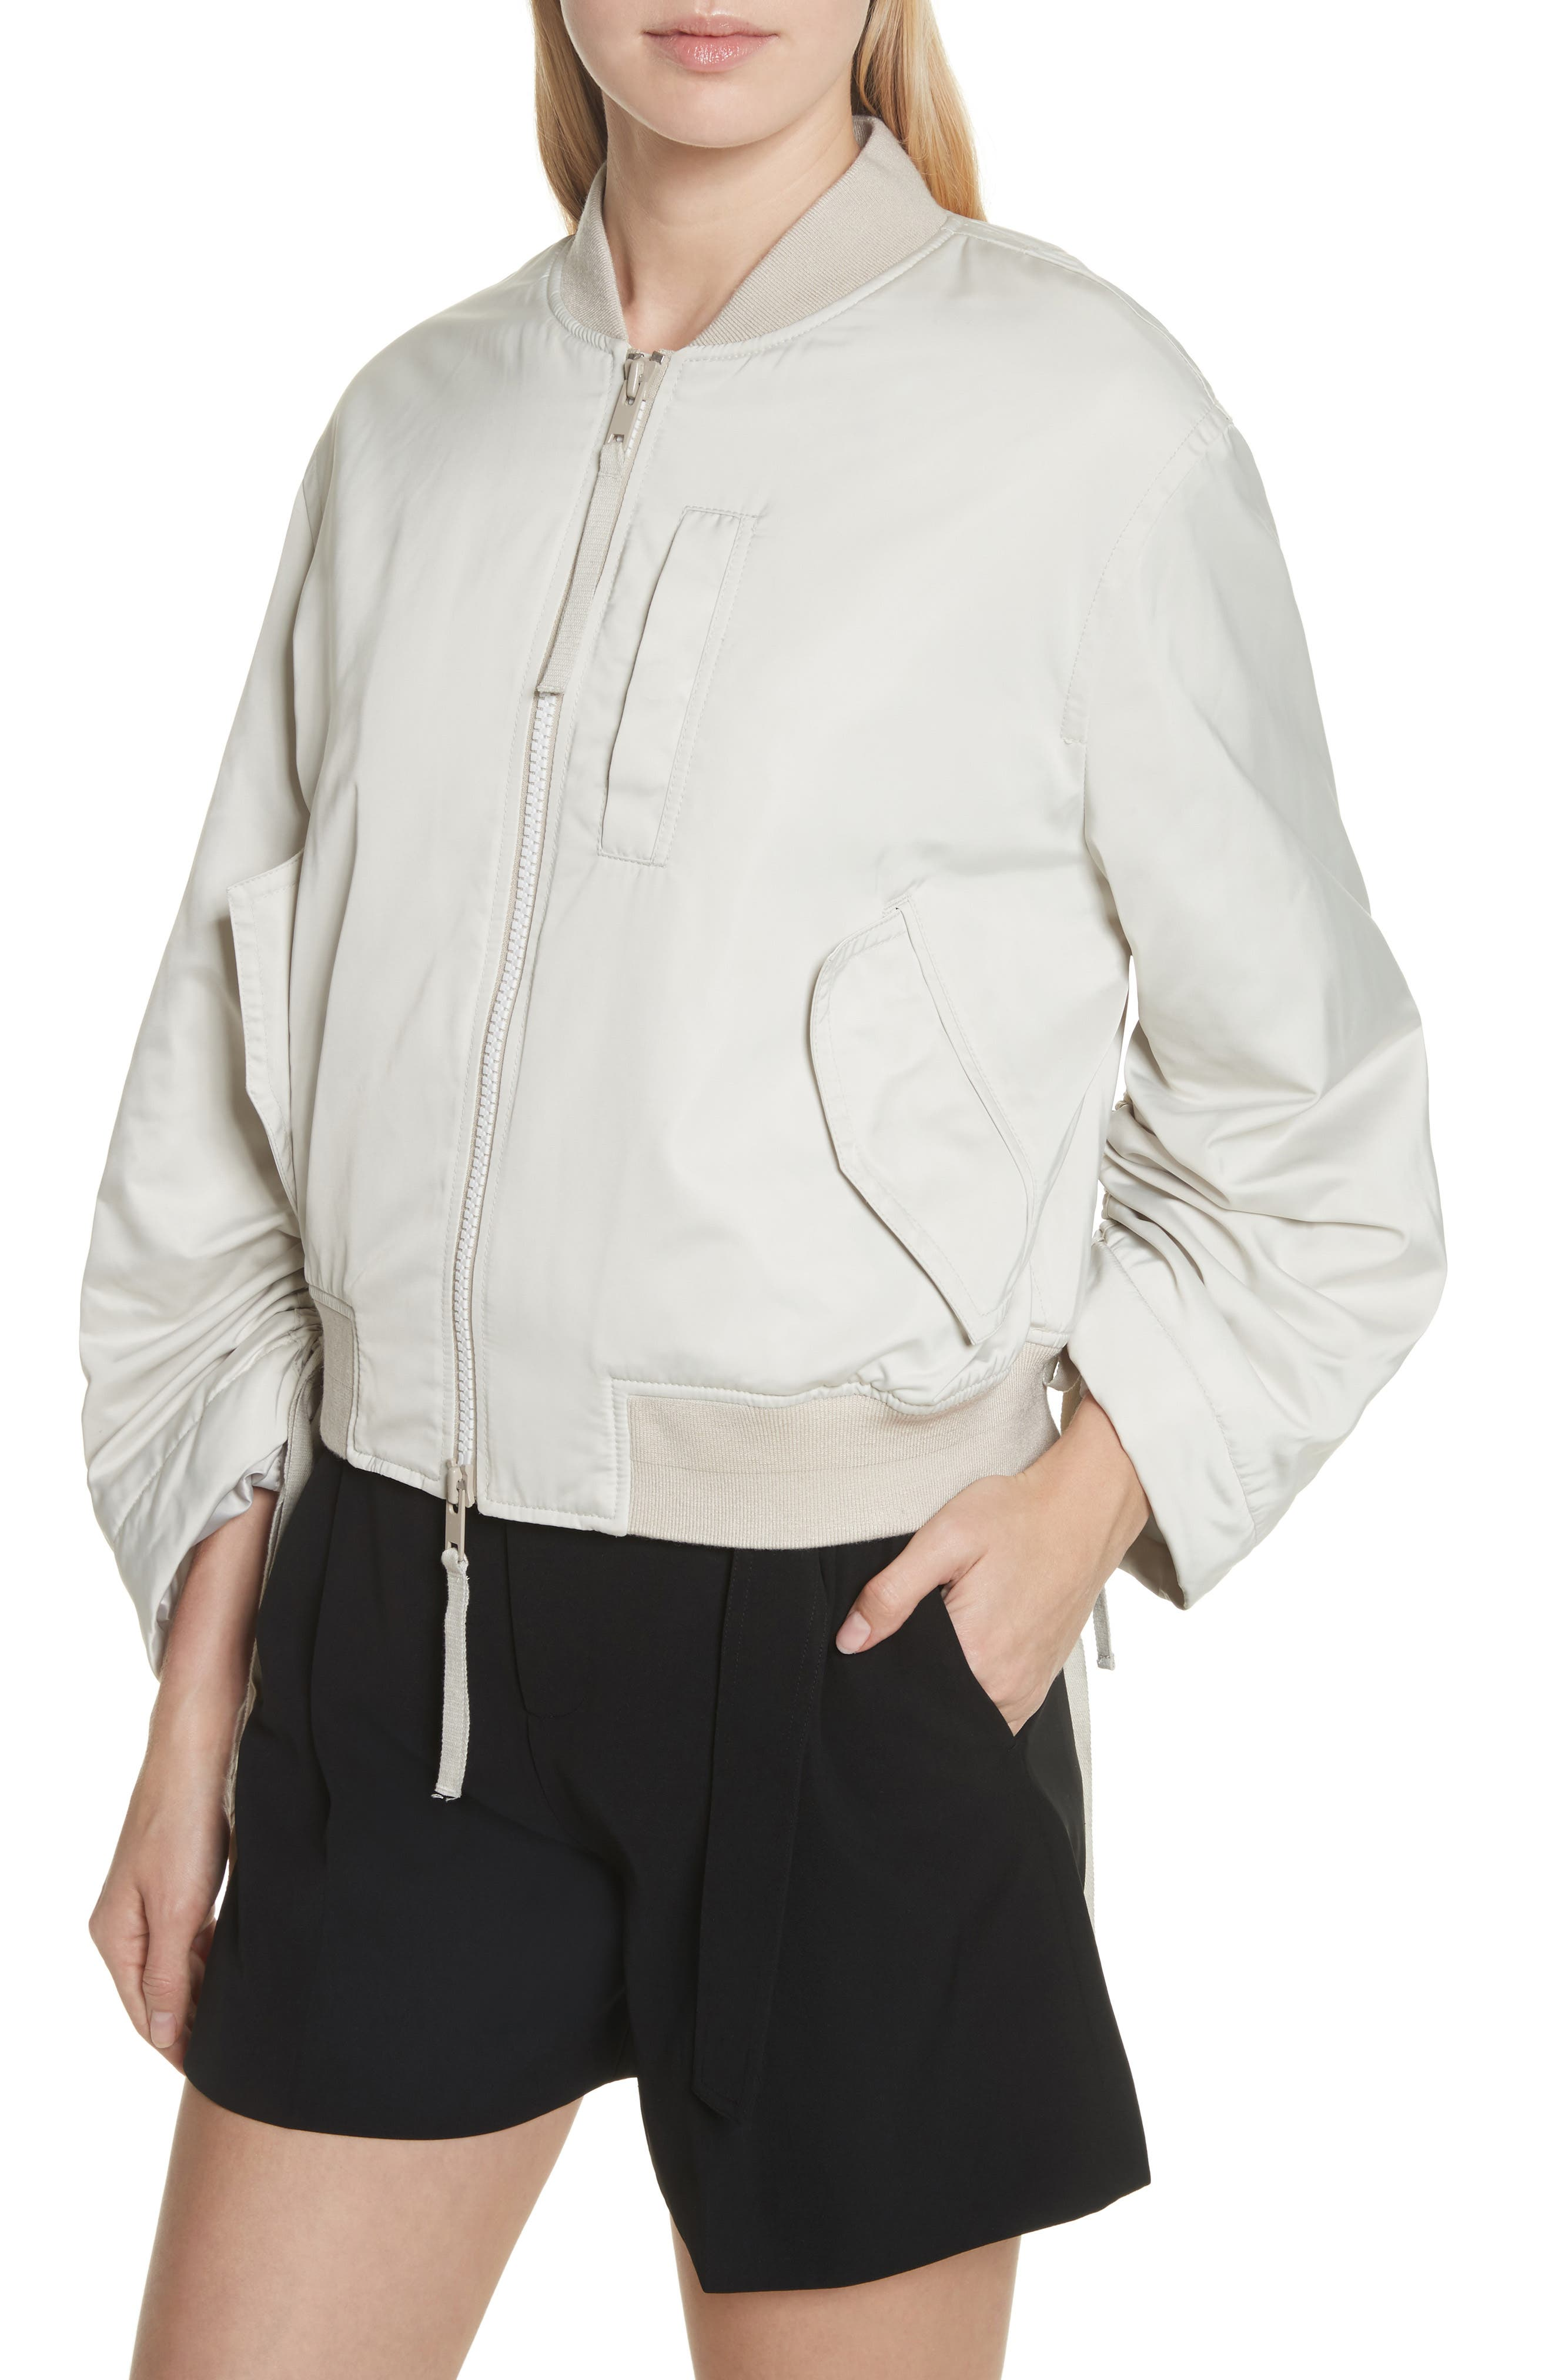 Parachute Bomber Jacket,                             Alternate thumbnail 4, color,                             Chalet